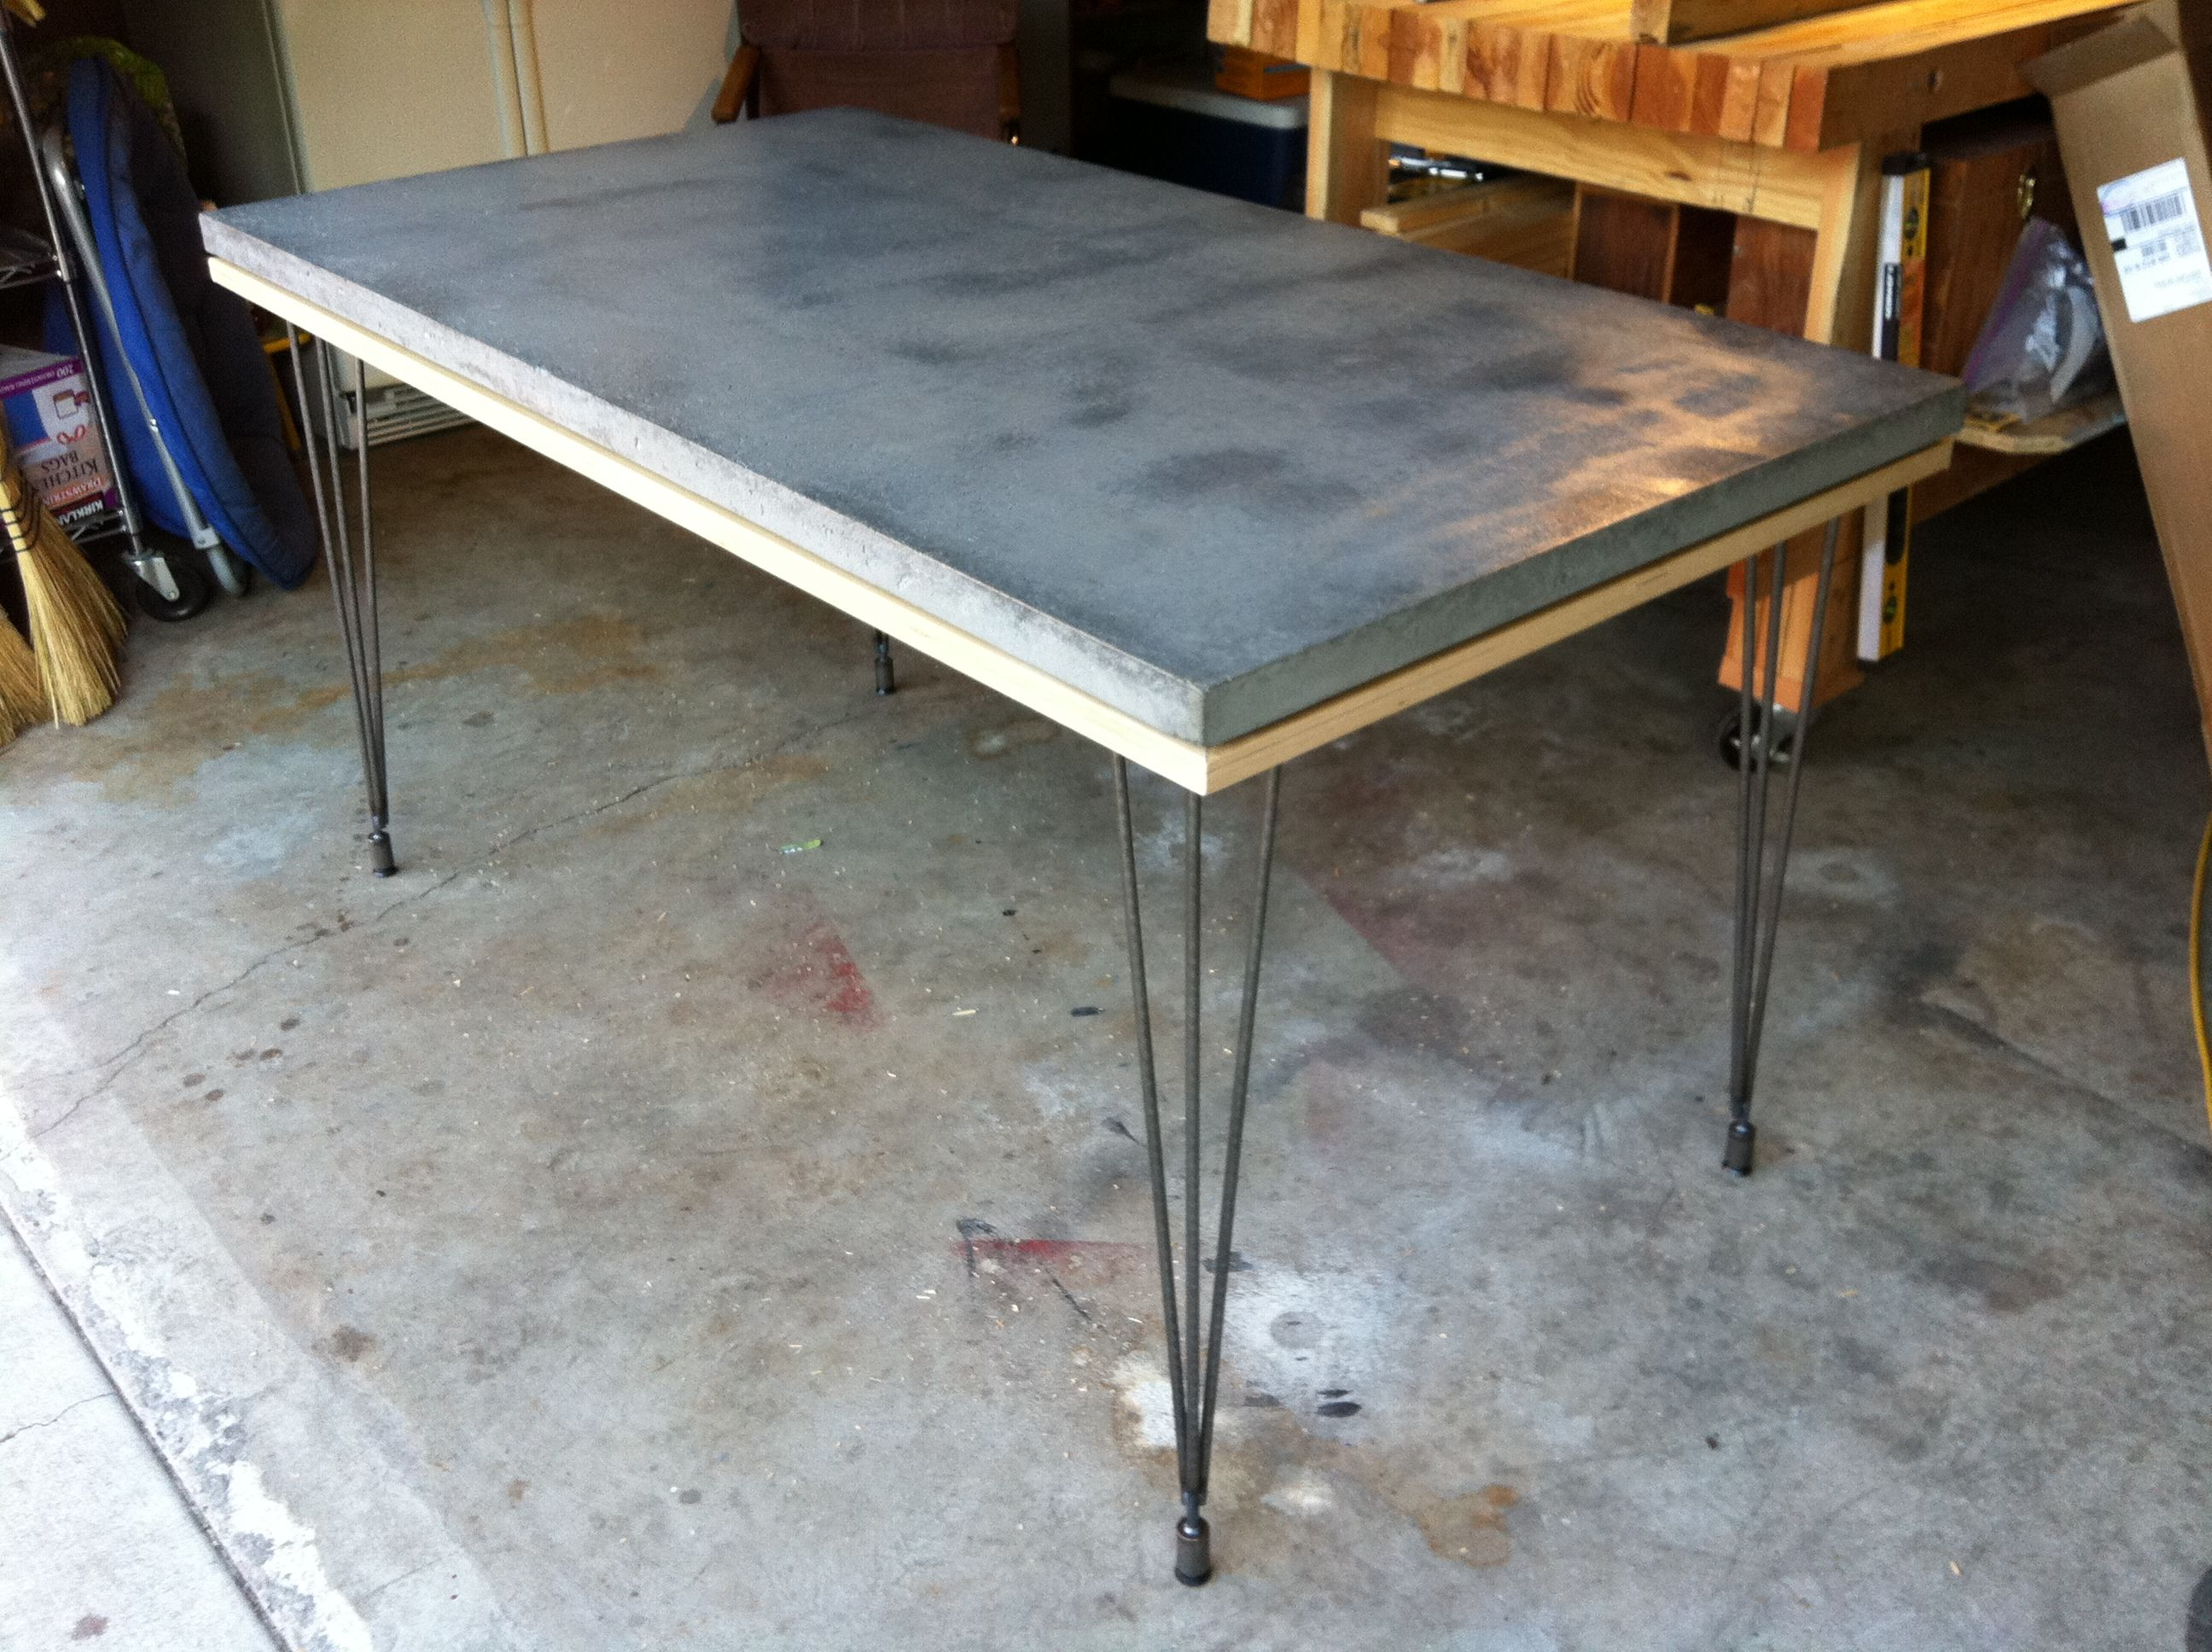 Lightweight Composite Concrete Table Top Urethane Coating Recycled Ikea Laminated Bed Frame